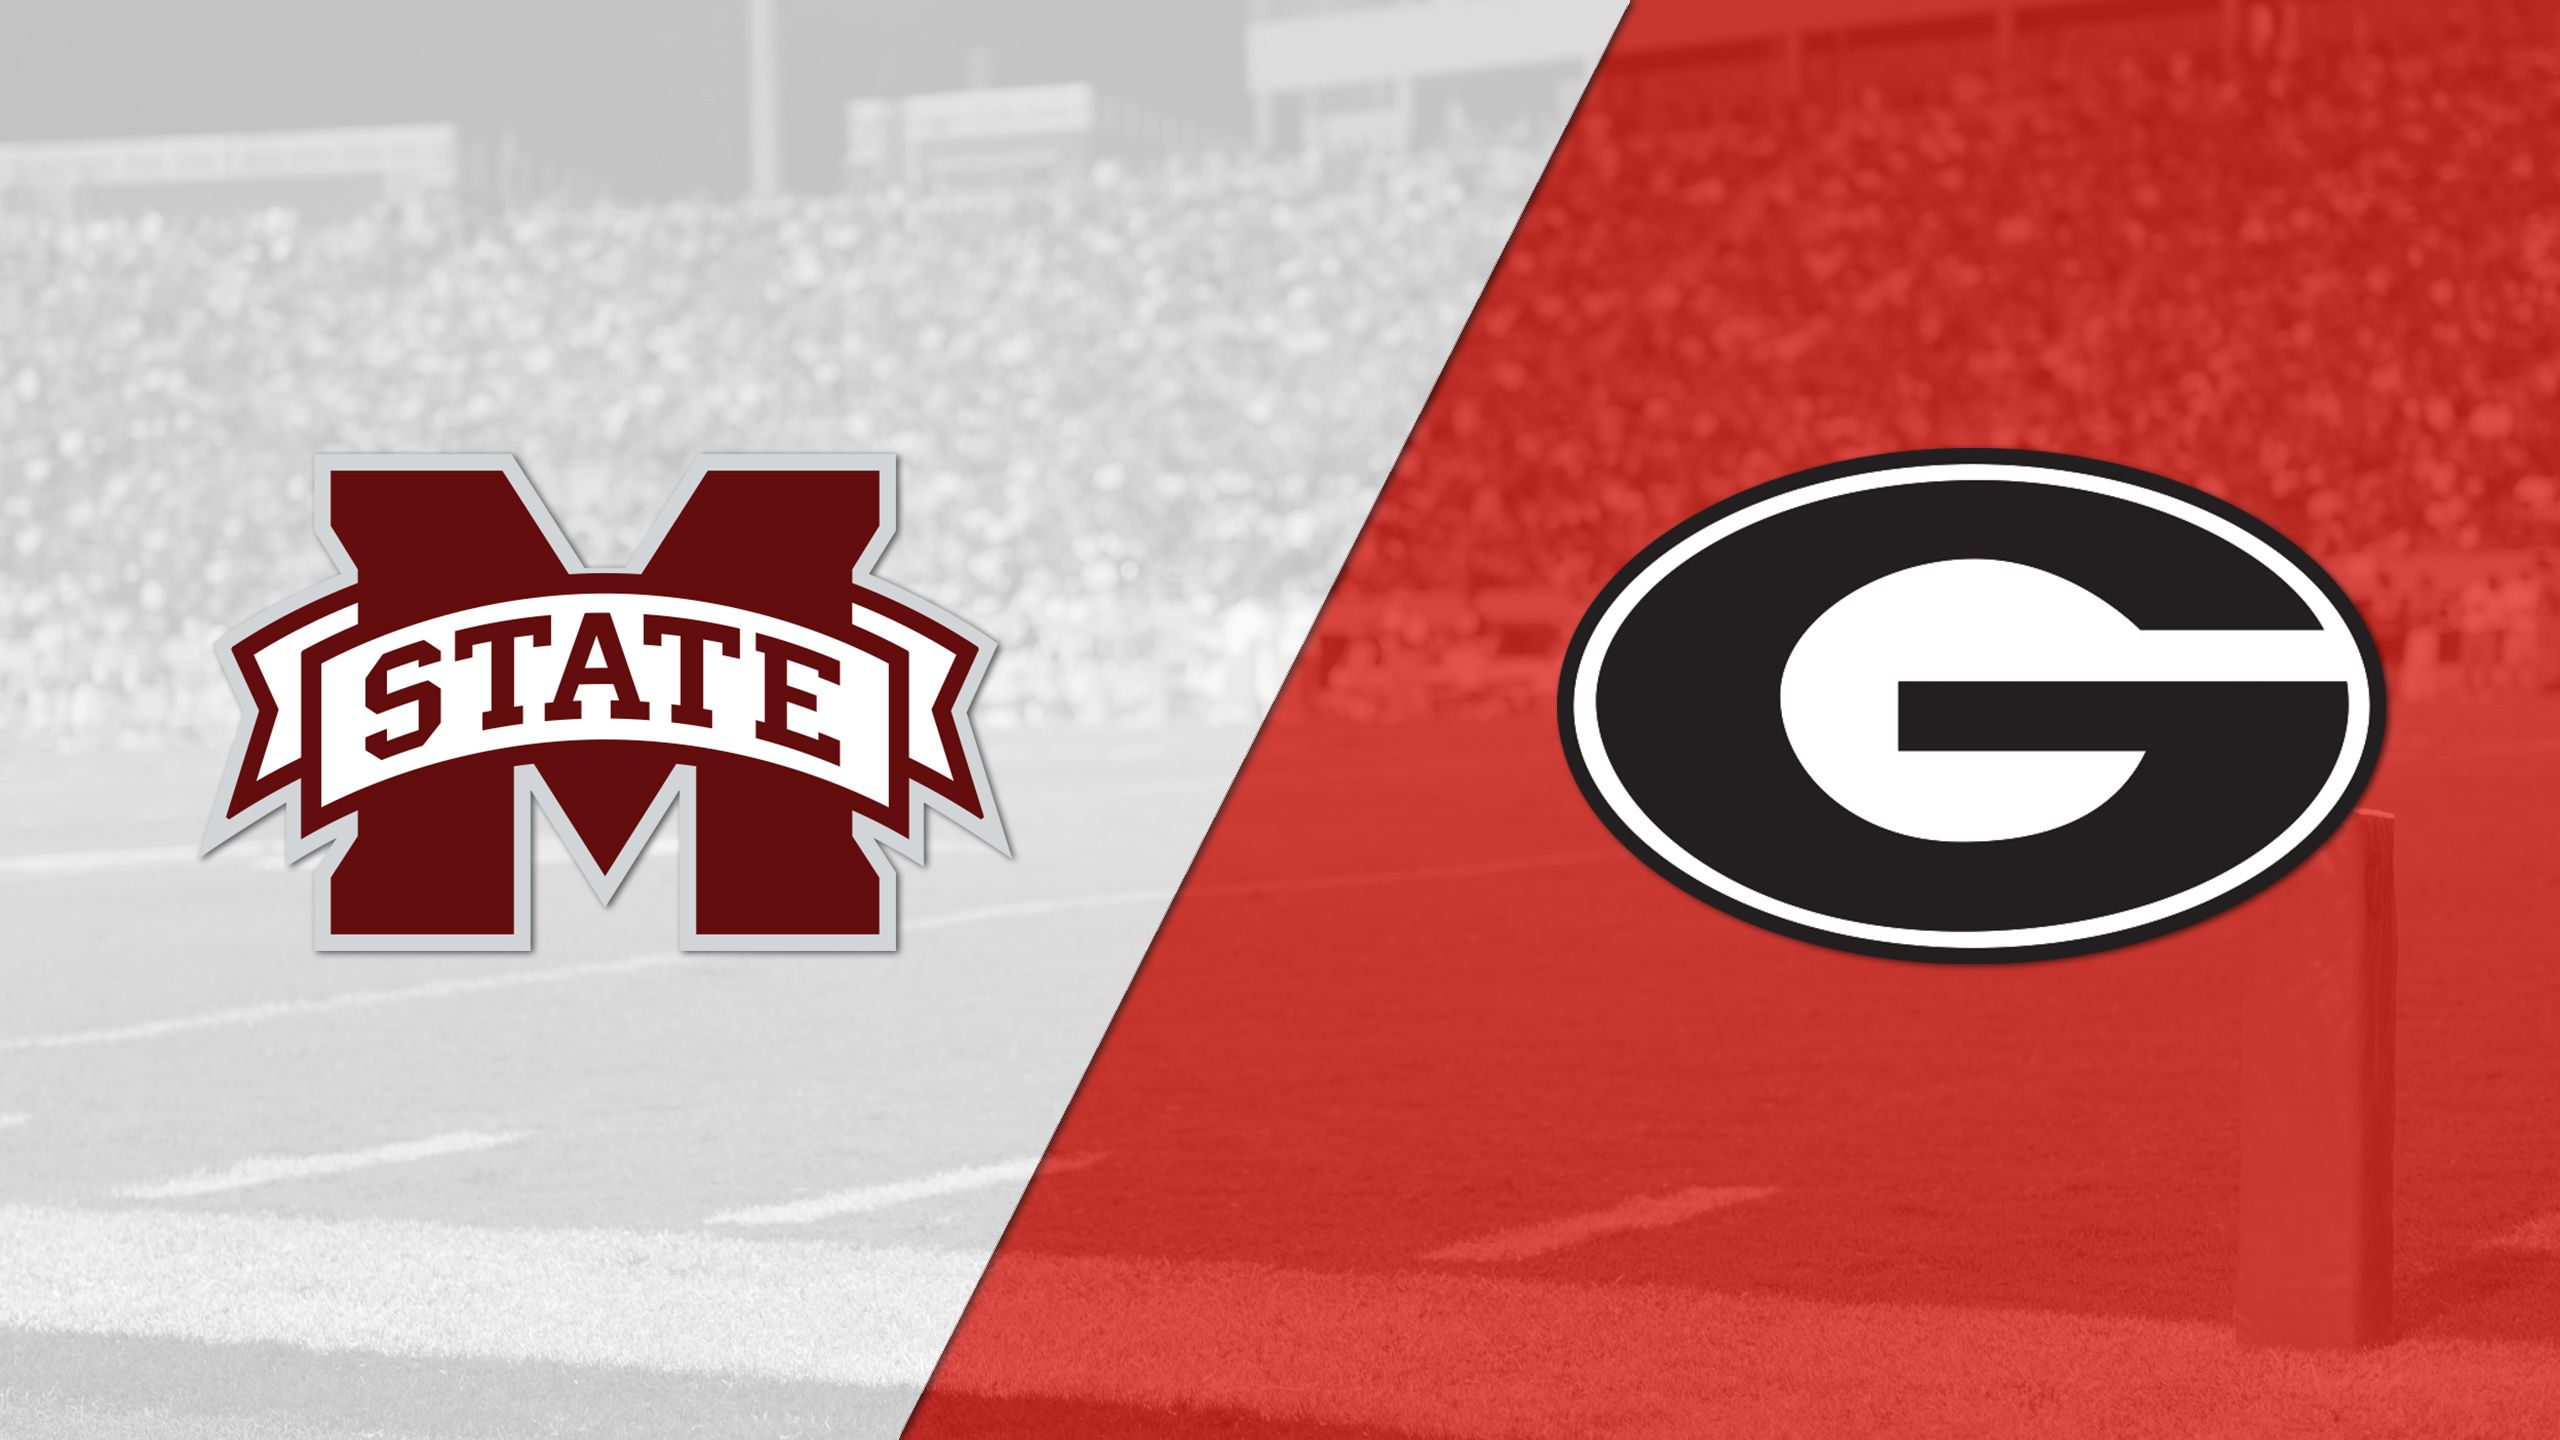 In Spanish - In Spanish - #17 Mississippi State vs. #11 Georgia (Football) (Football)